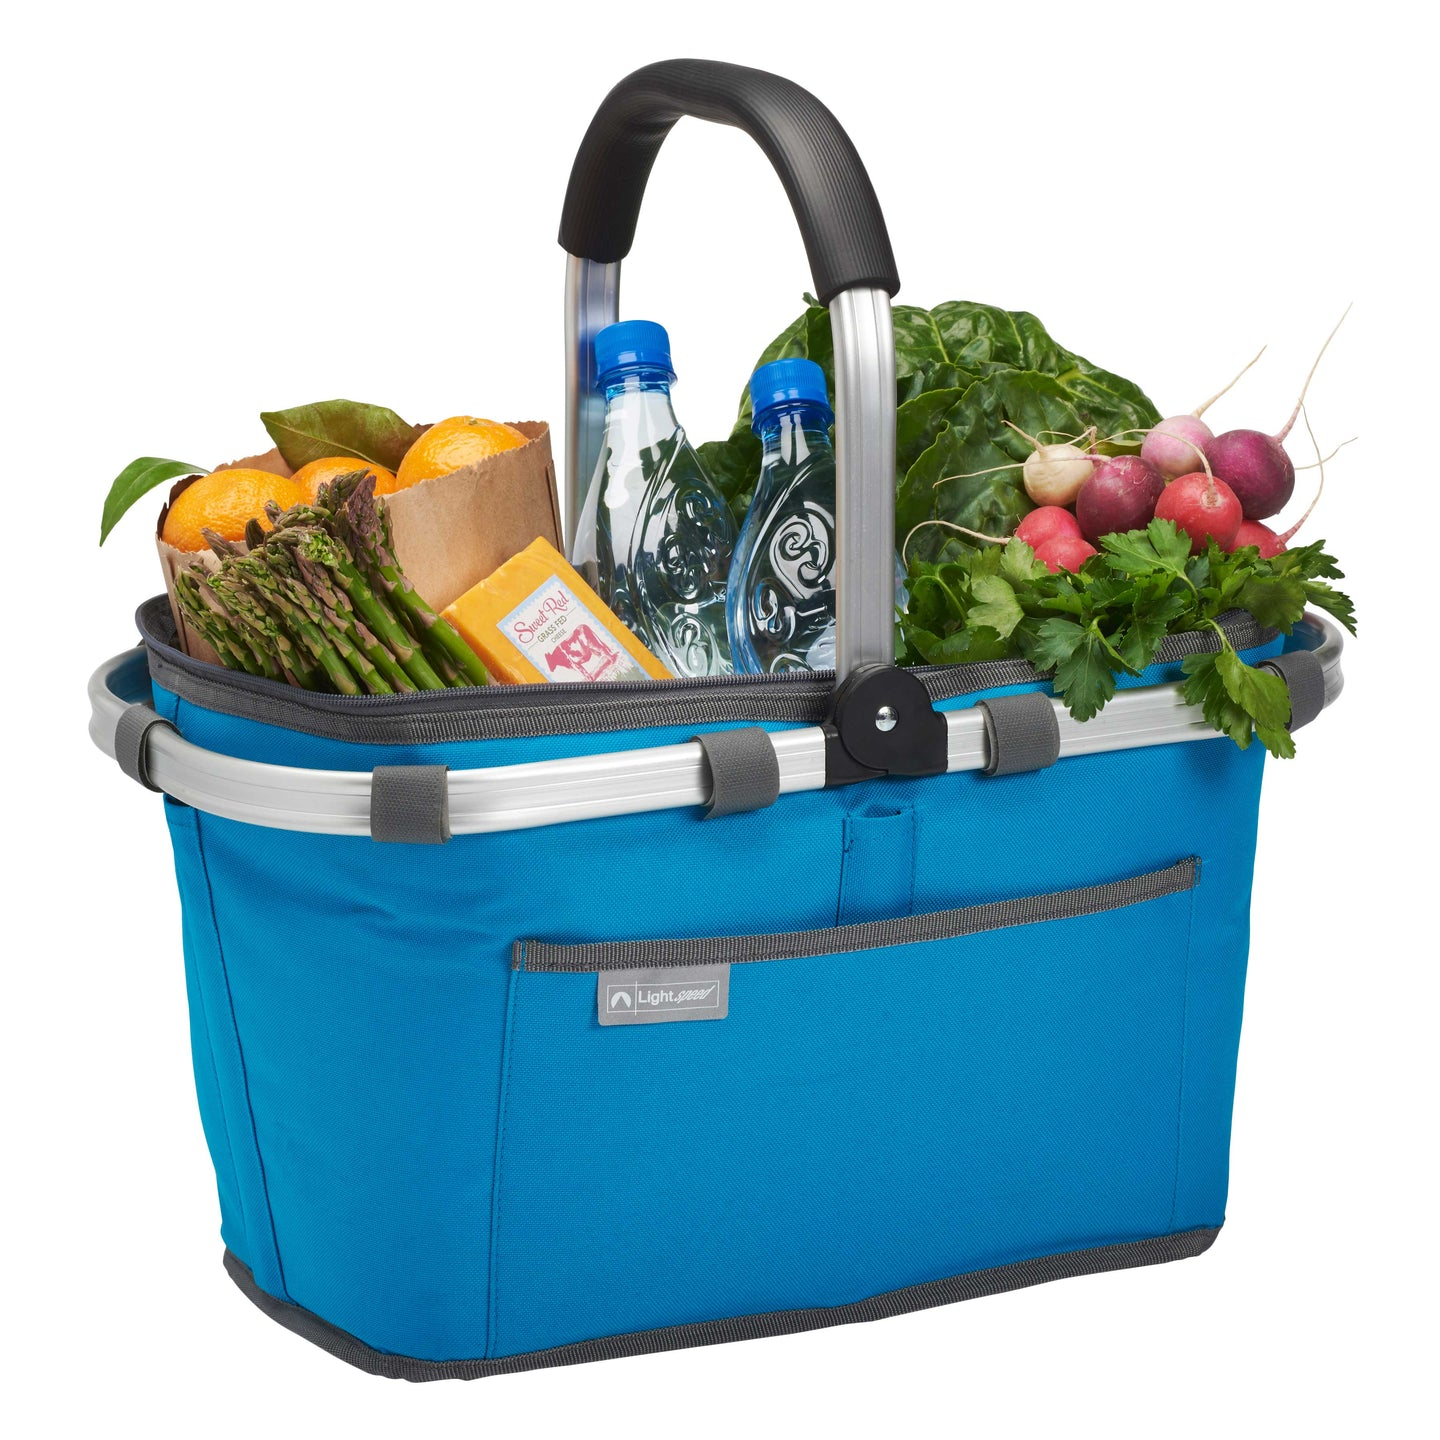 Blue, insulated market basket filled with groceries.